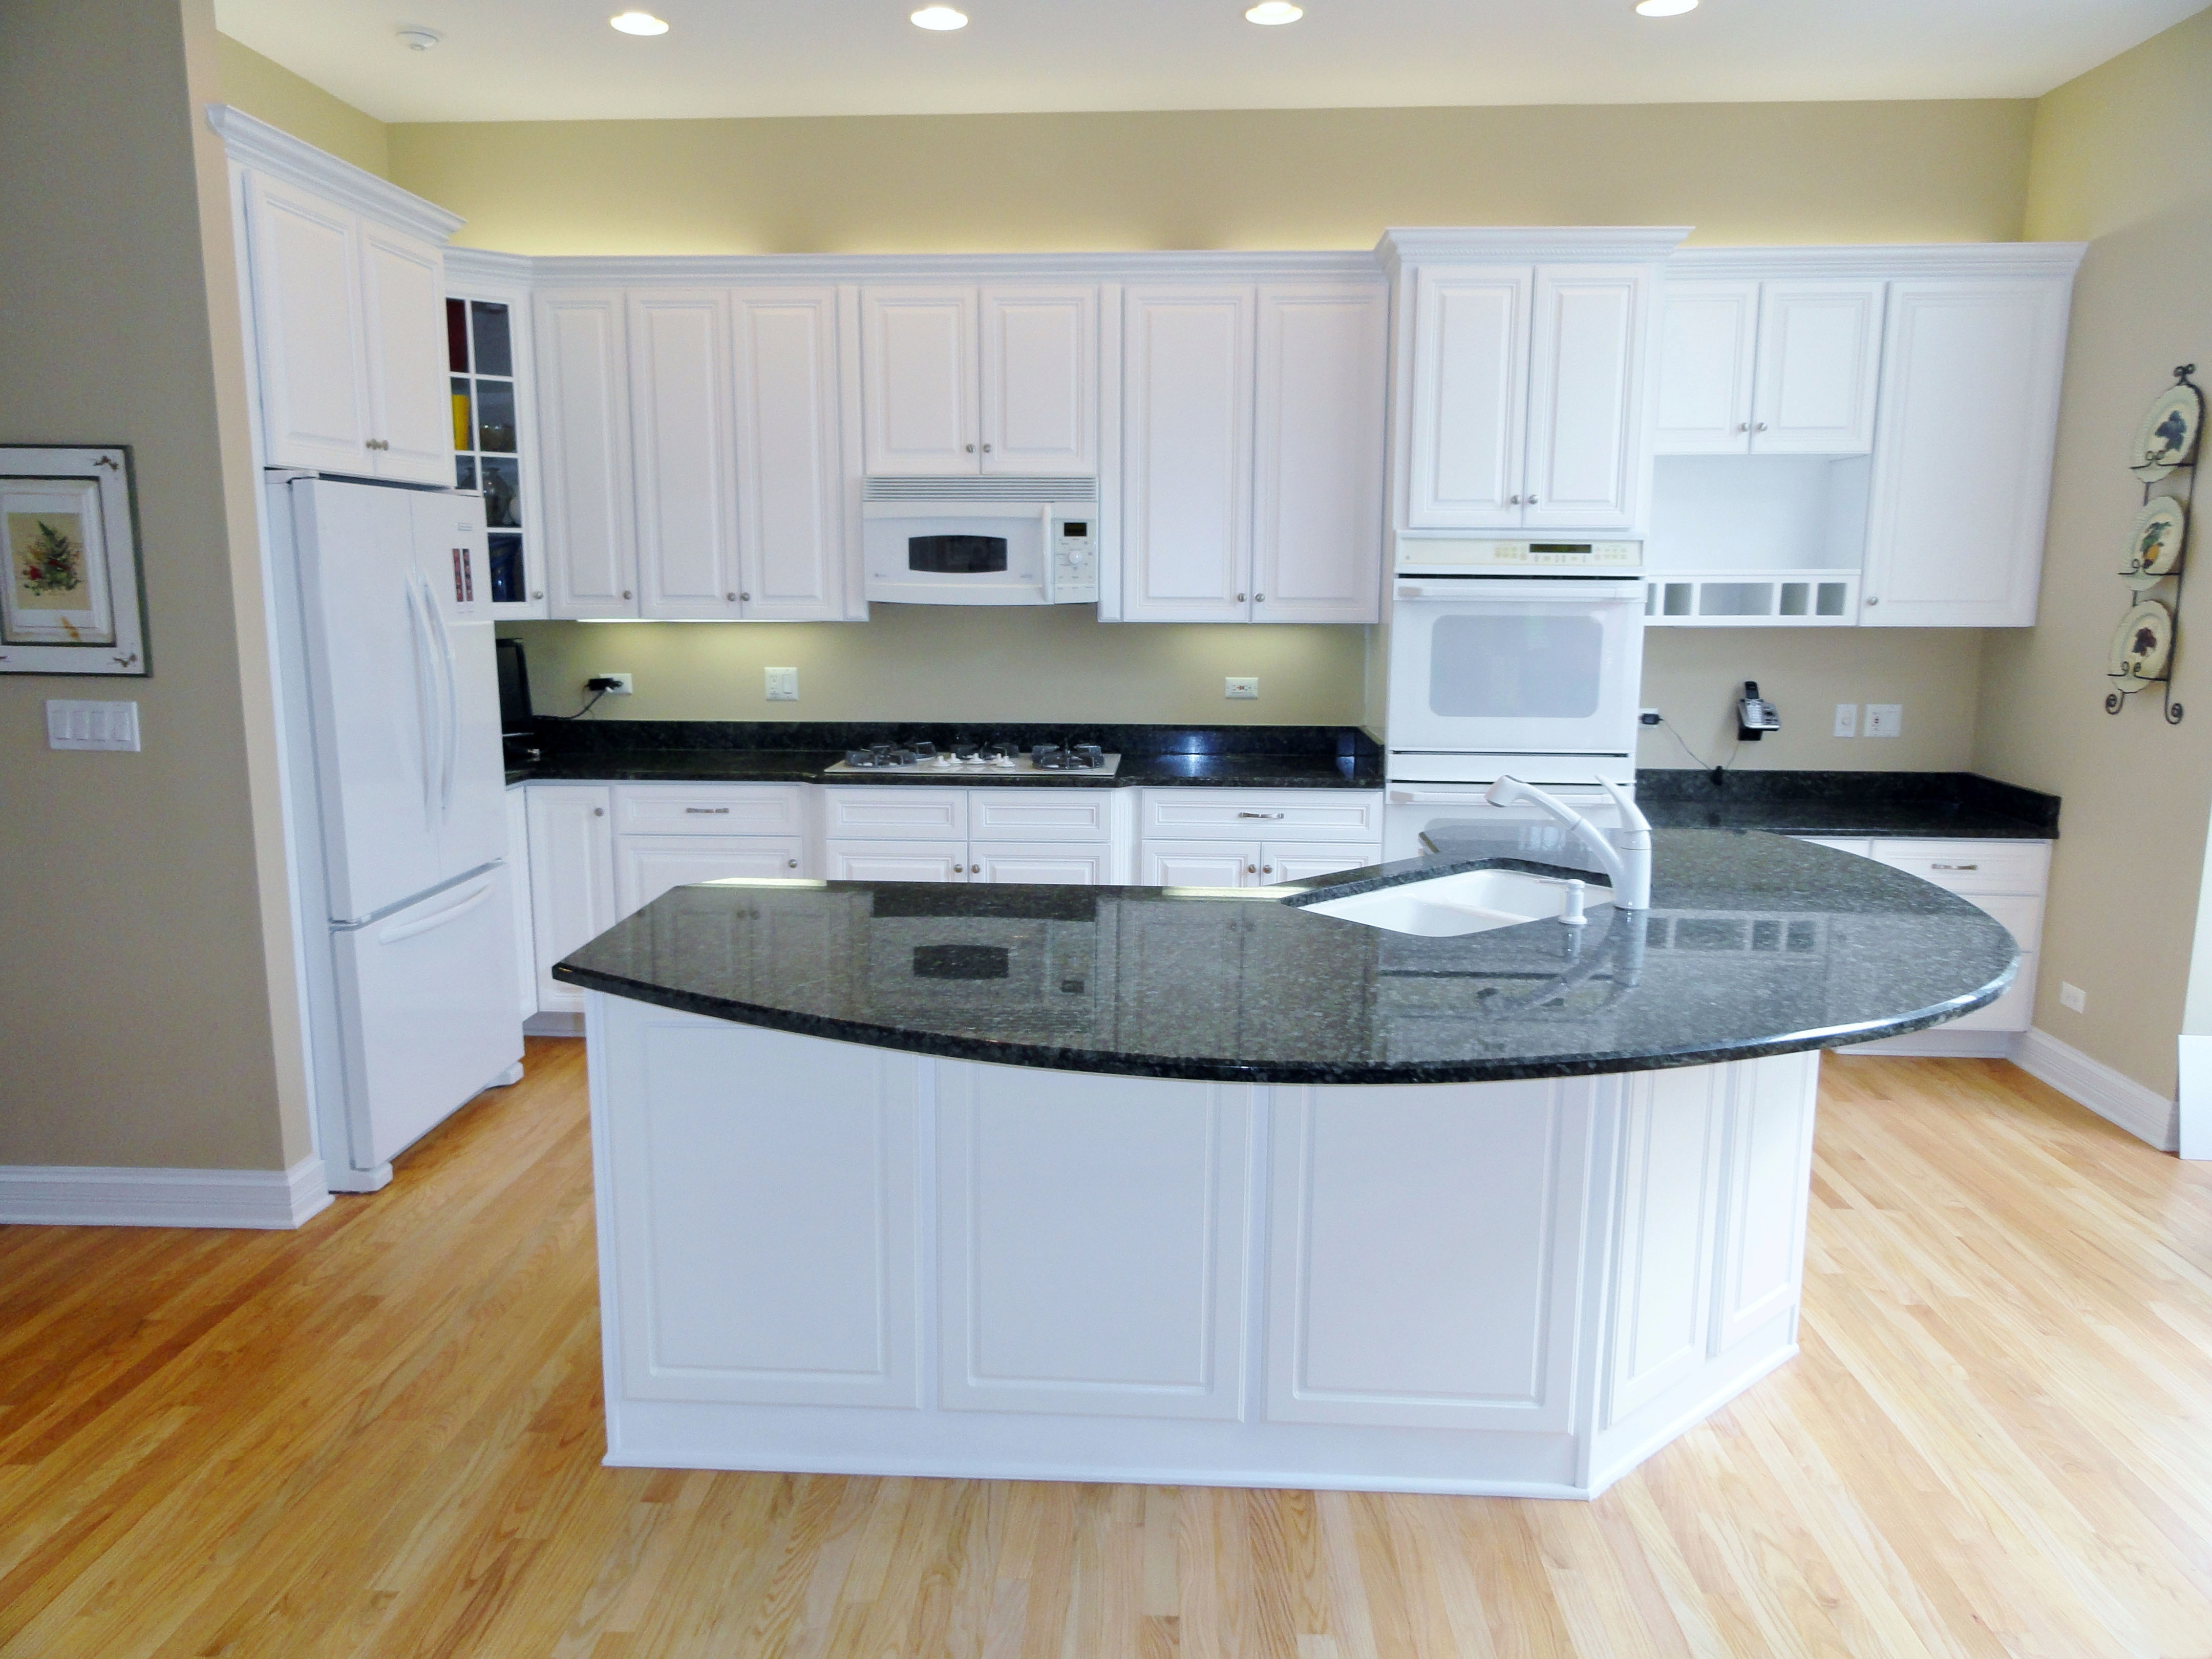 photos resurfacing kitchen cabinets 30 Cabinet refacing with white painted maple triple upgrade design